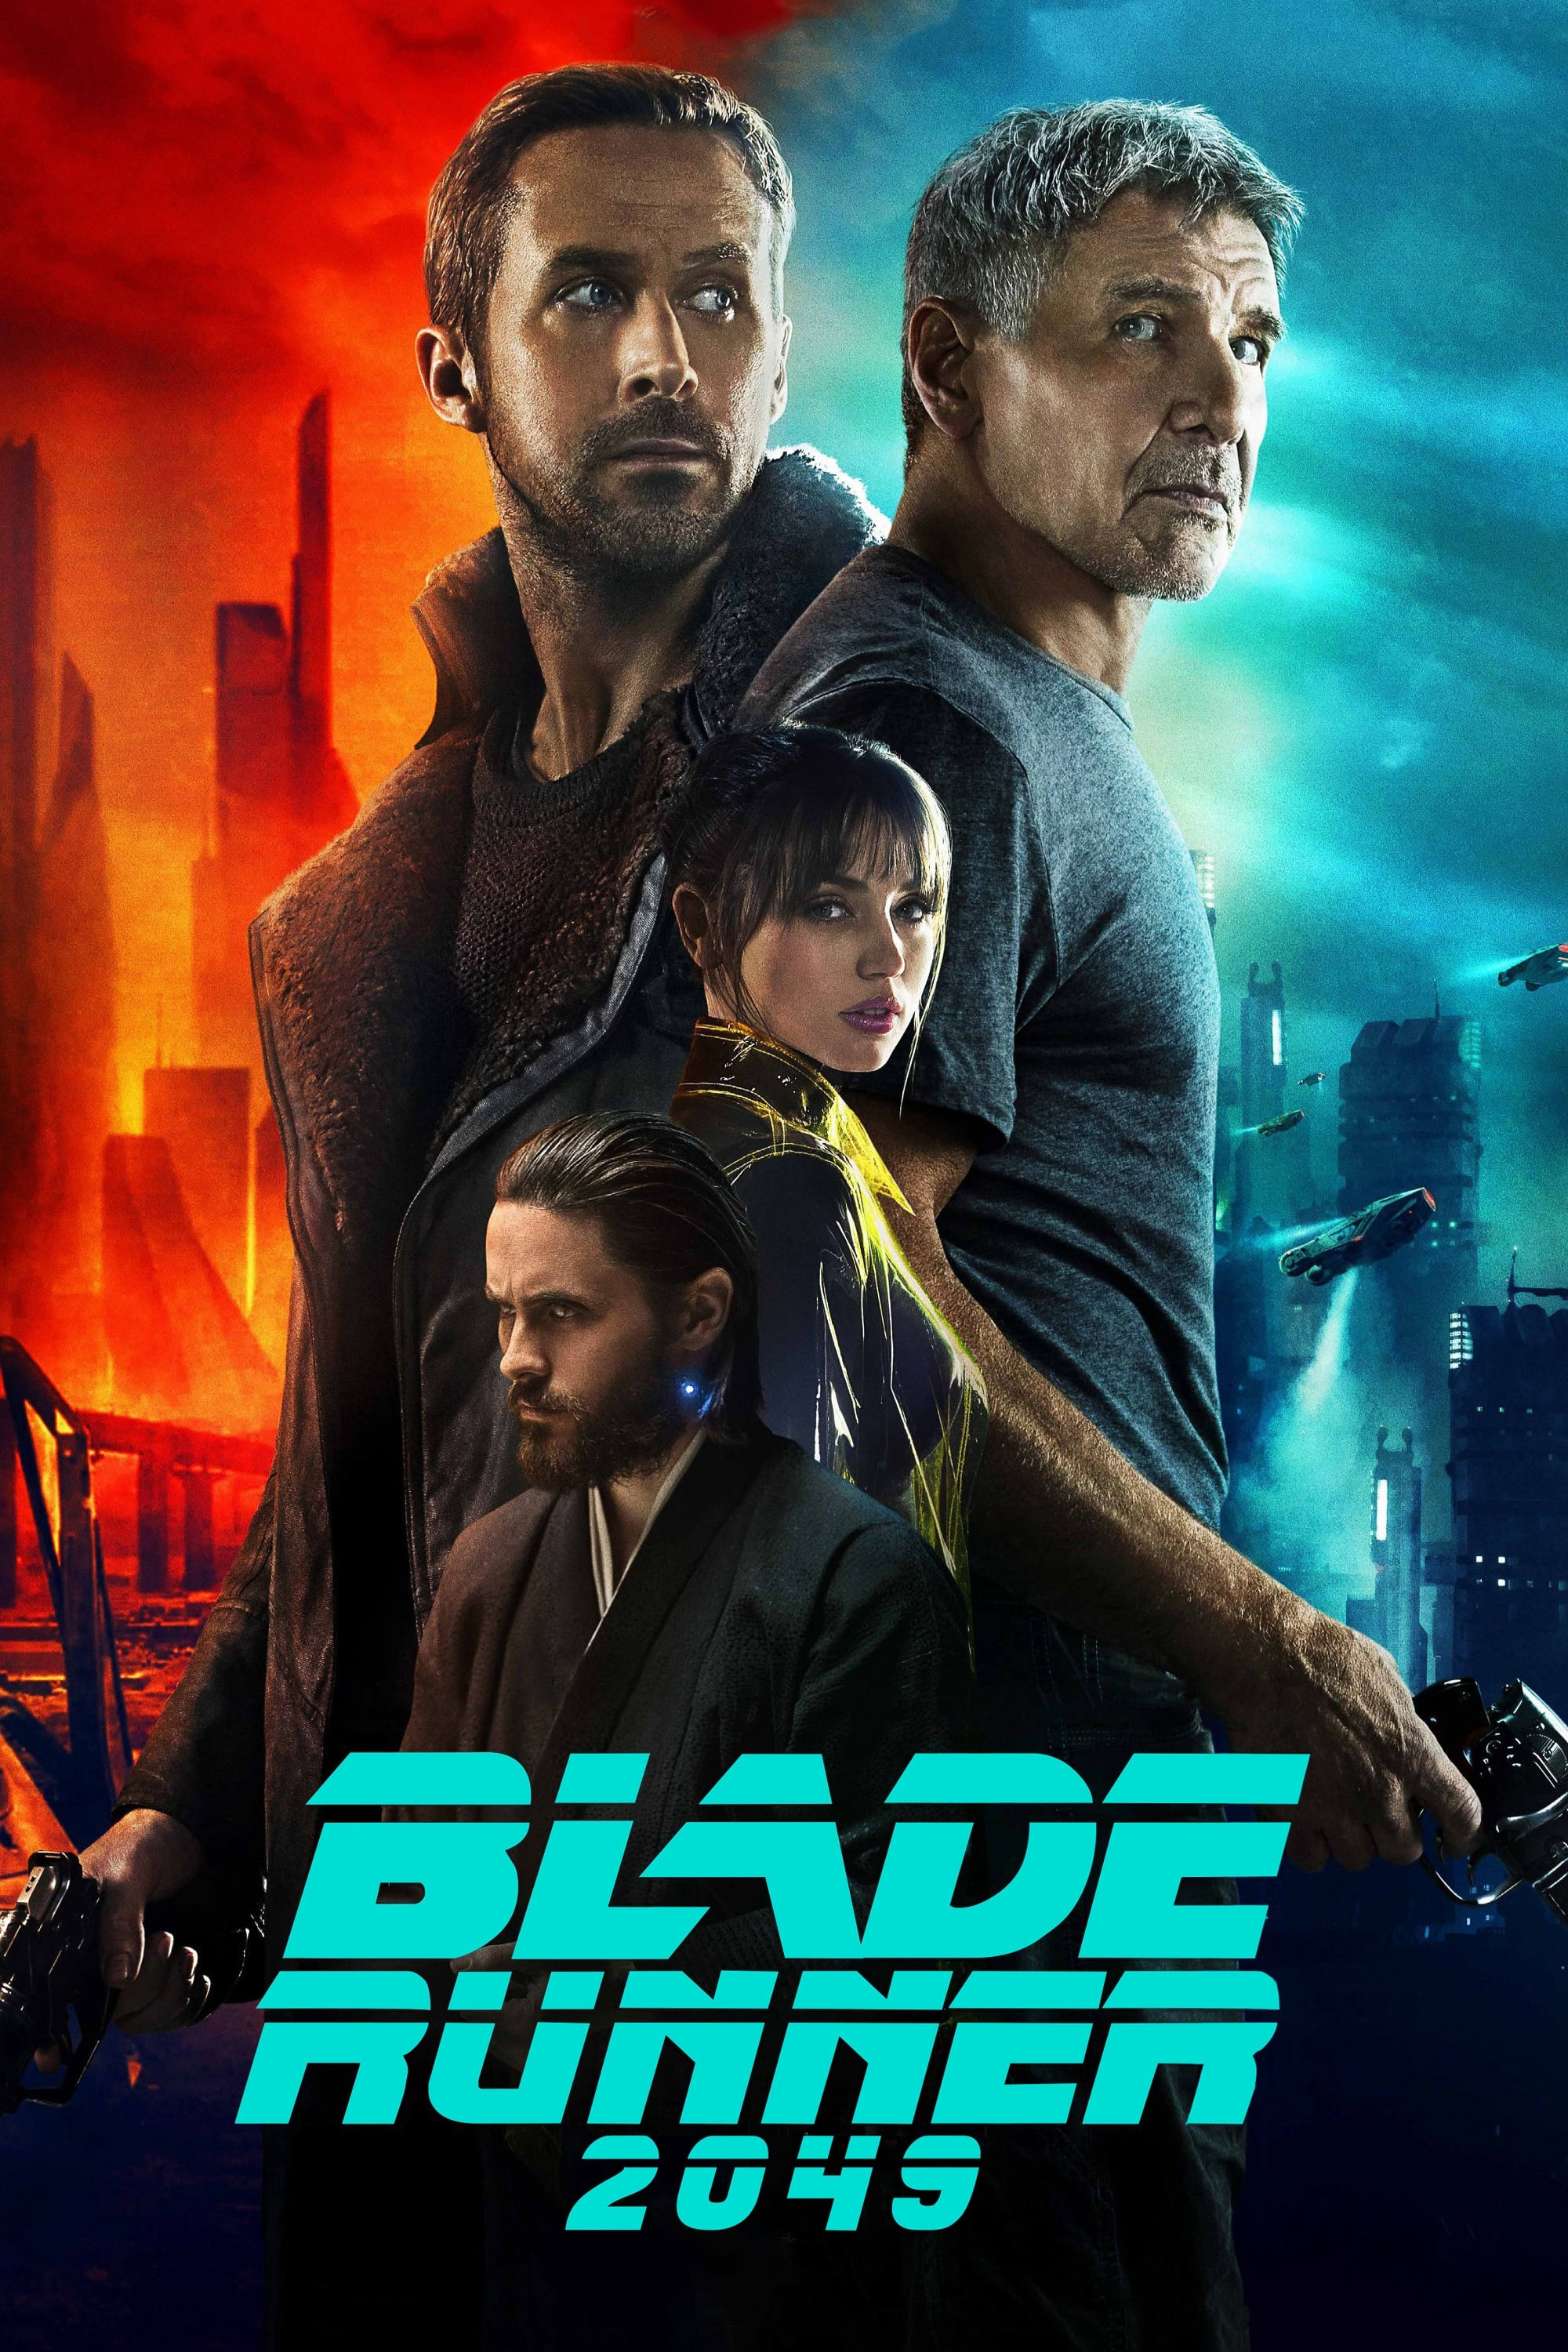 image for Blade Runner 2049